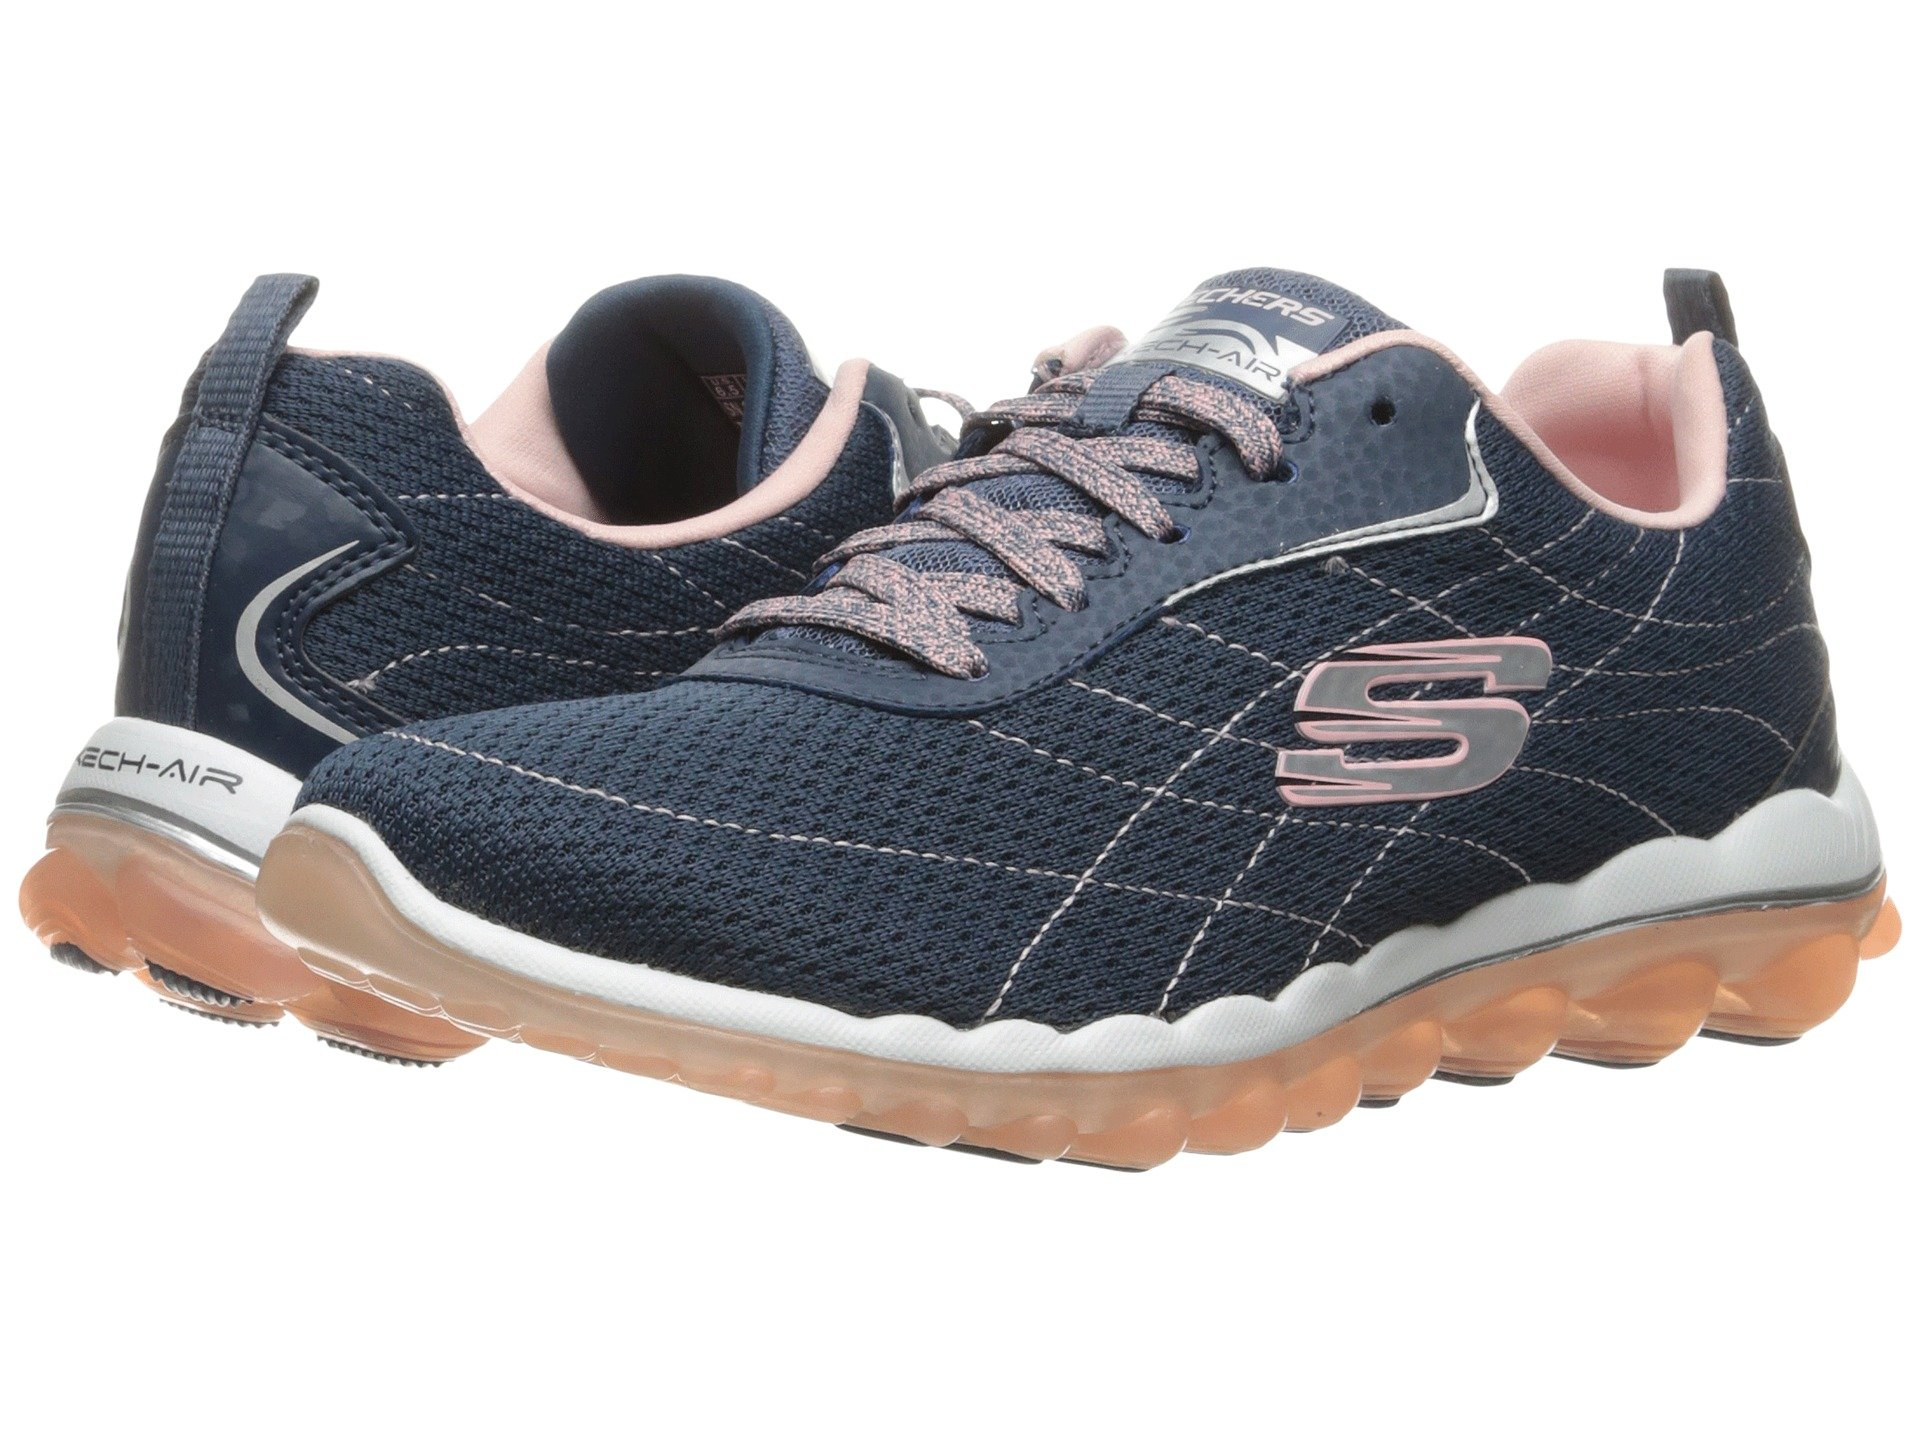 Skechers Skech Air   Modern Edge Women S Shoes